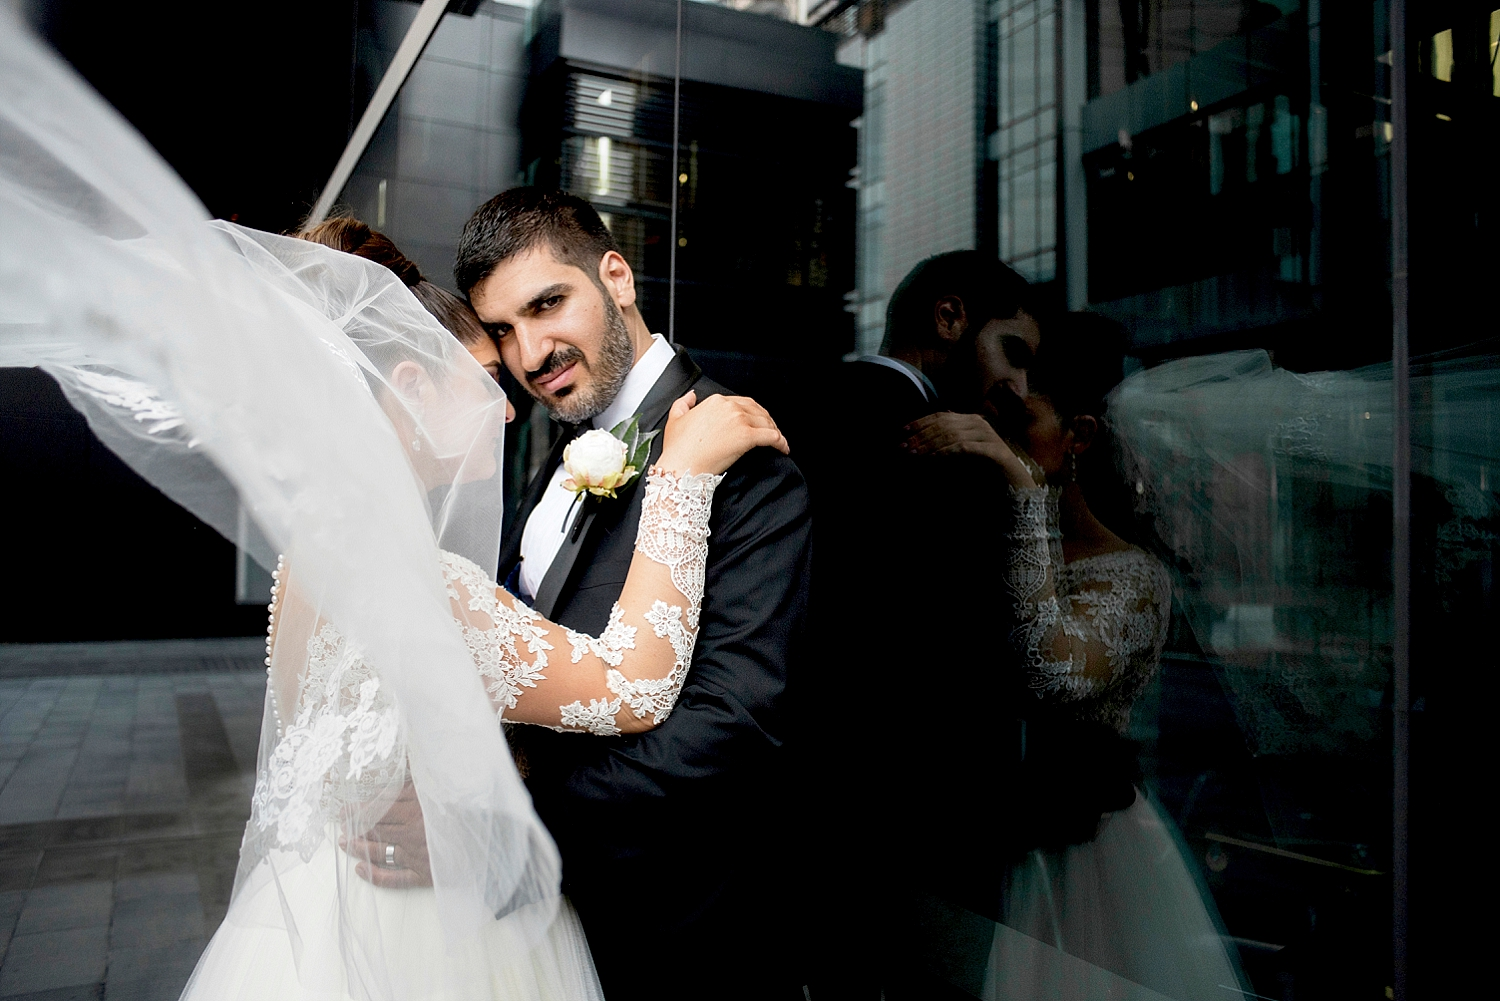 44 couple at brookfield place wedding perth.JPG